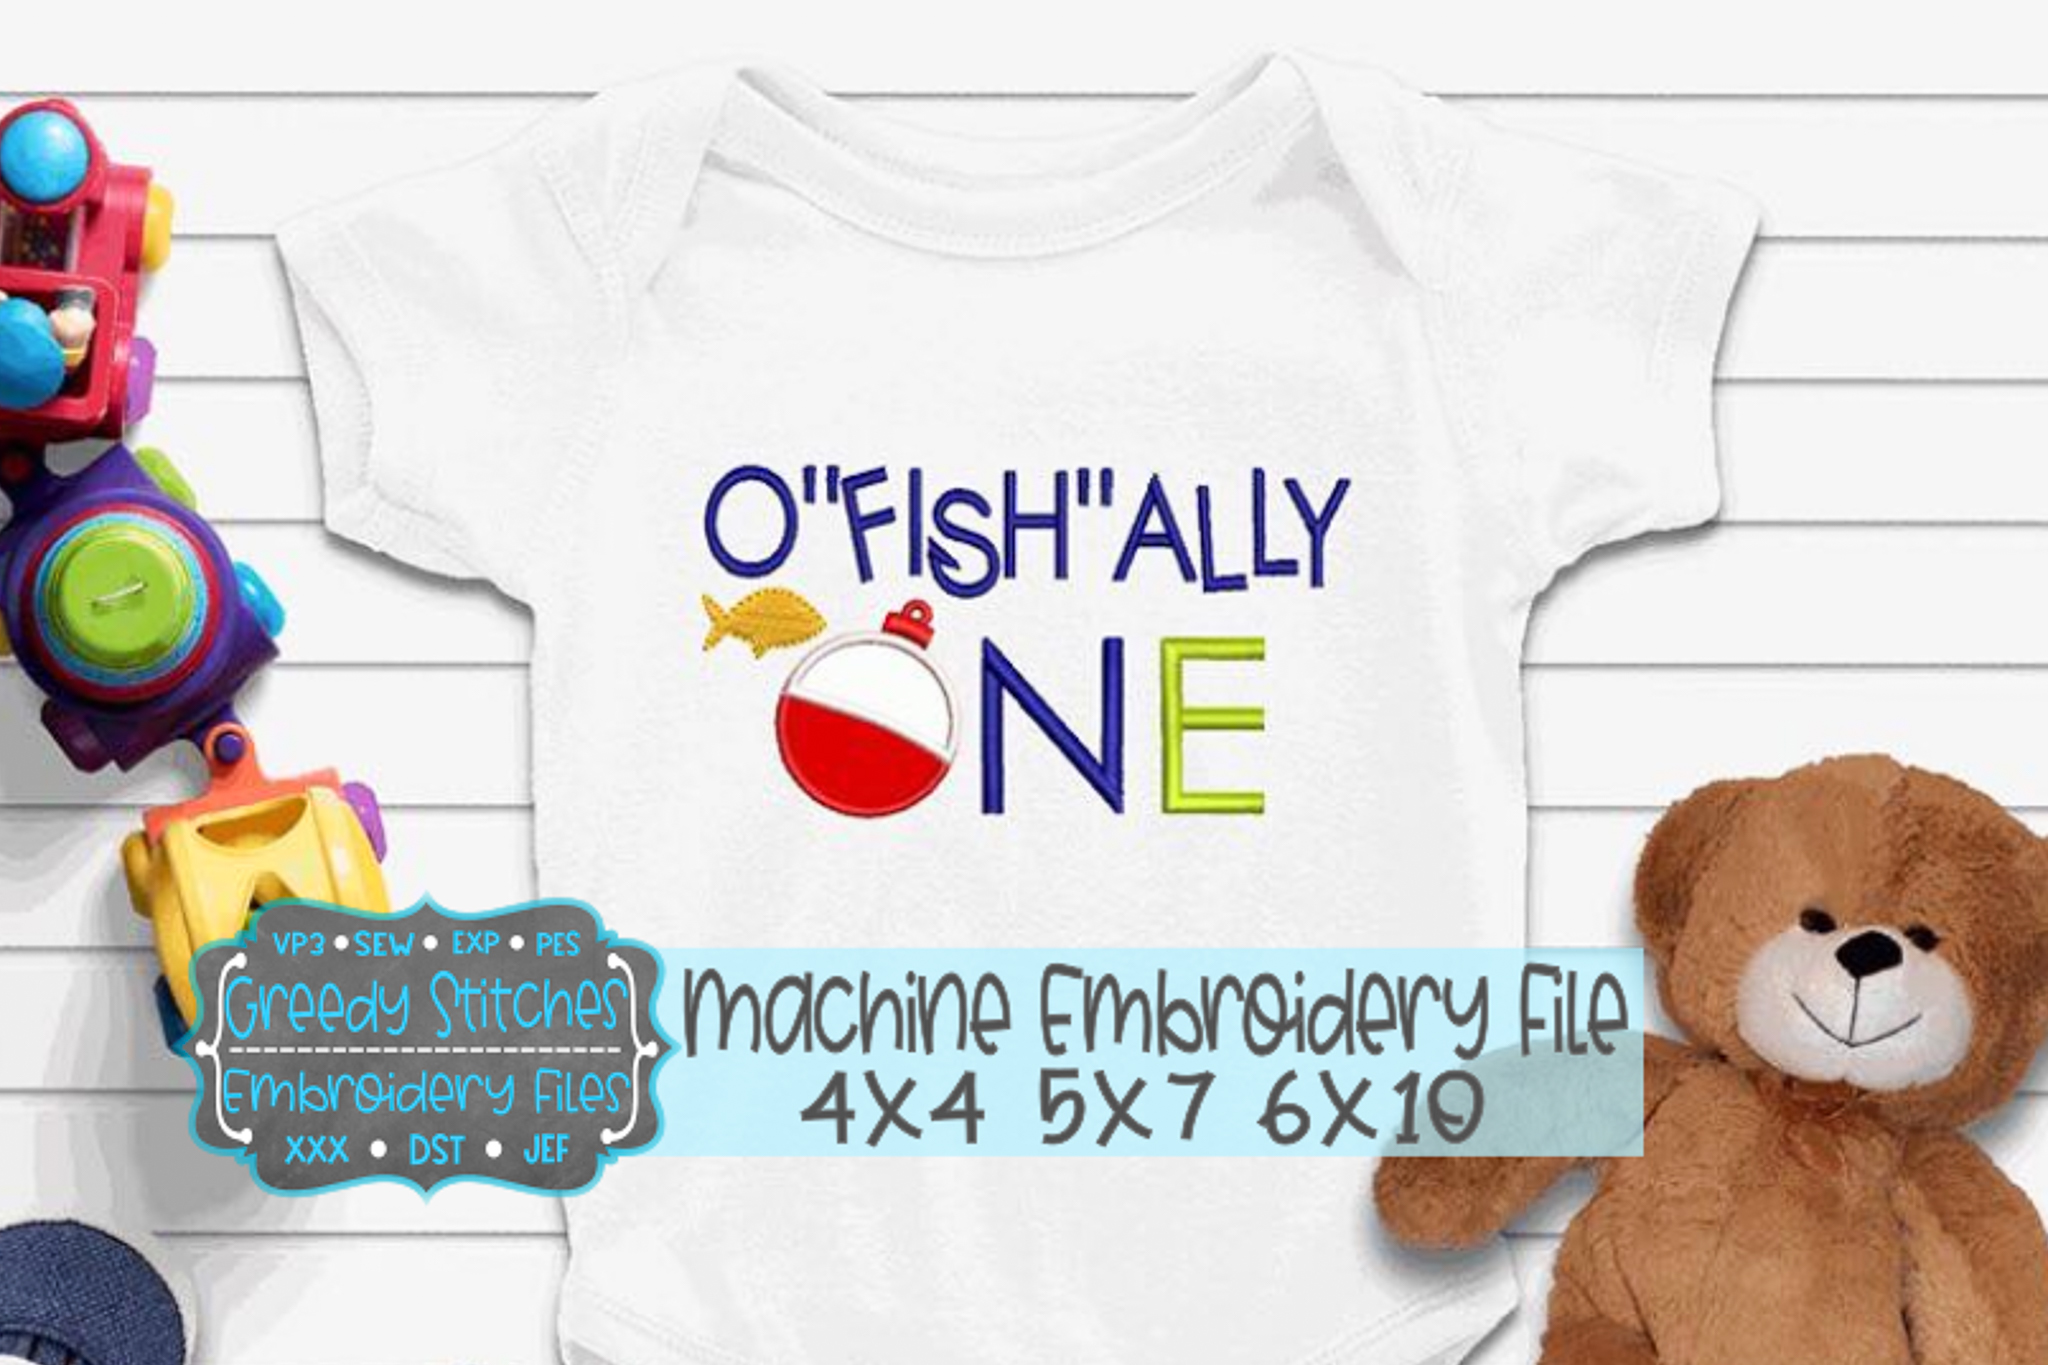 O'FISH'ALLY ONE Machne Embroidery Files example image 3